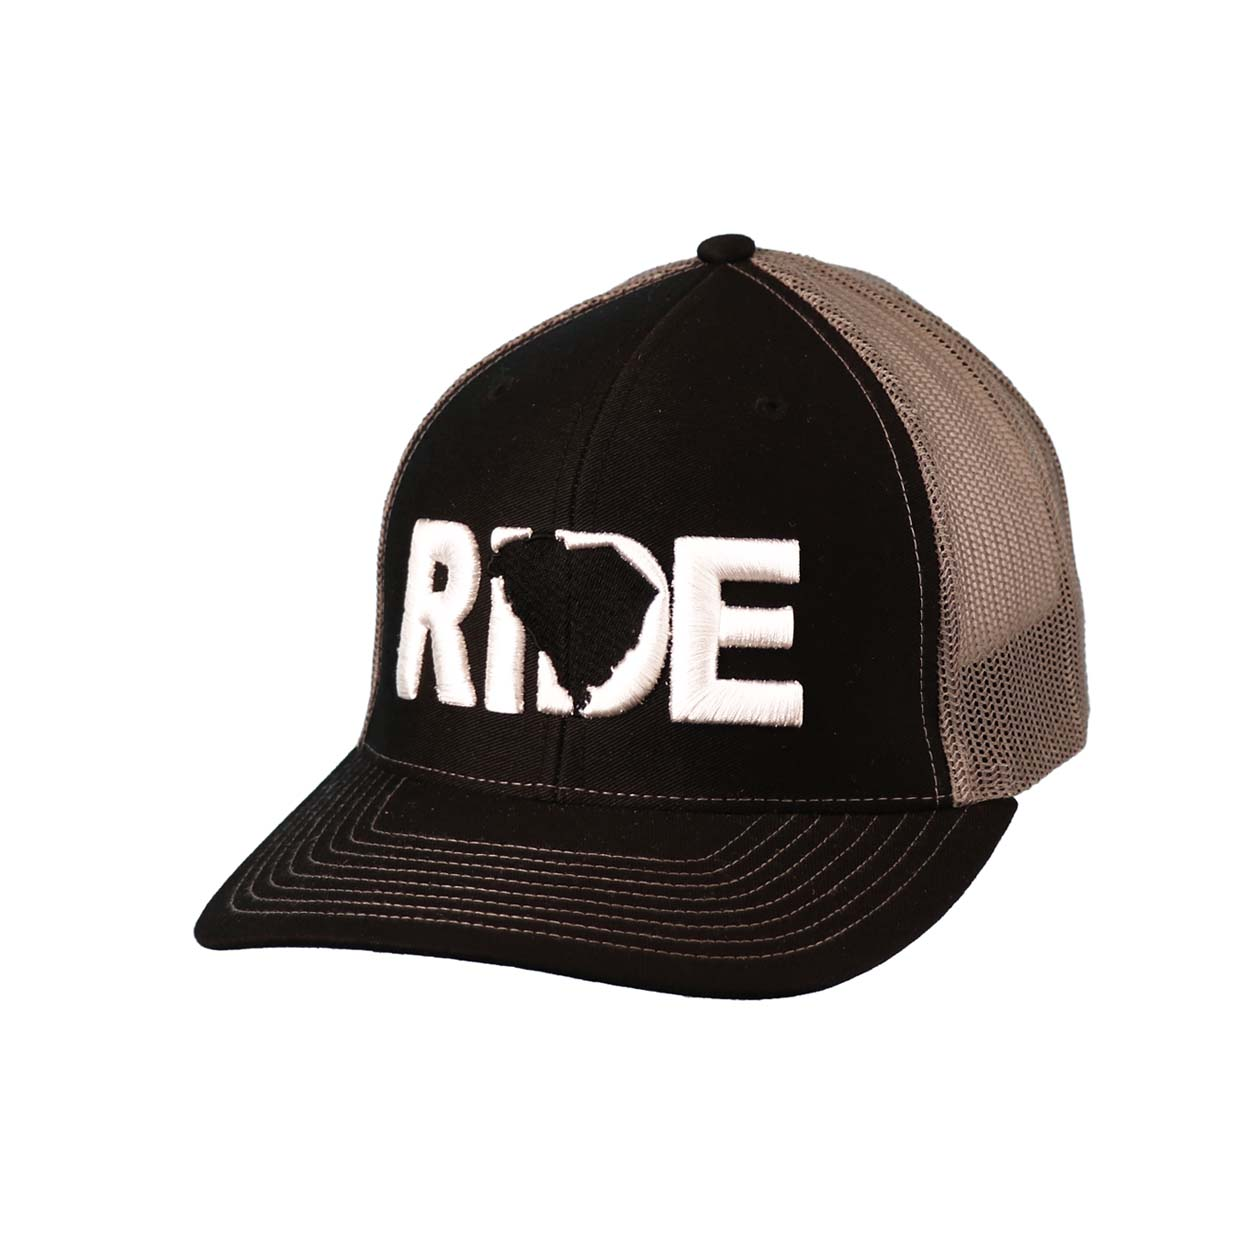 Ride South Carolina Classic Embroidered Snapback Trucker Hat Black/White